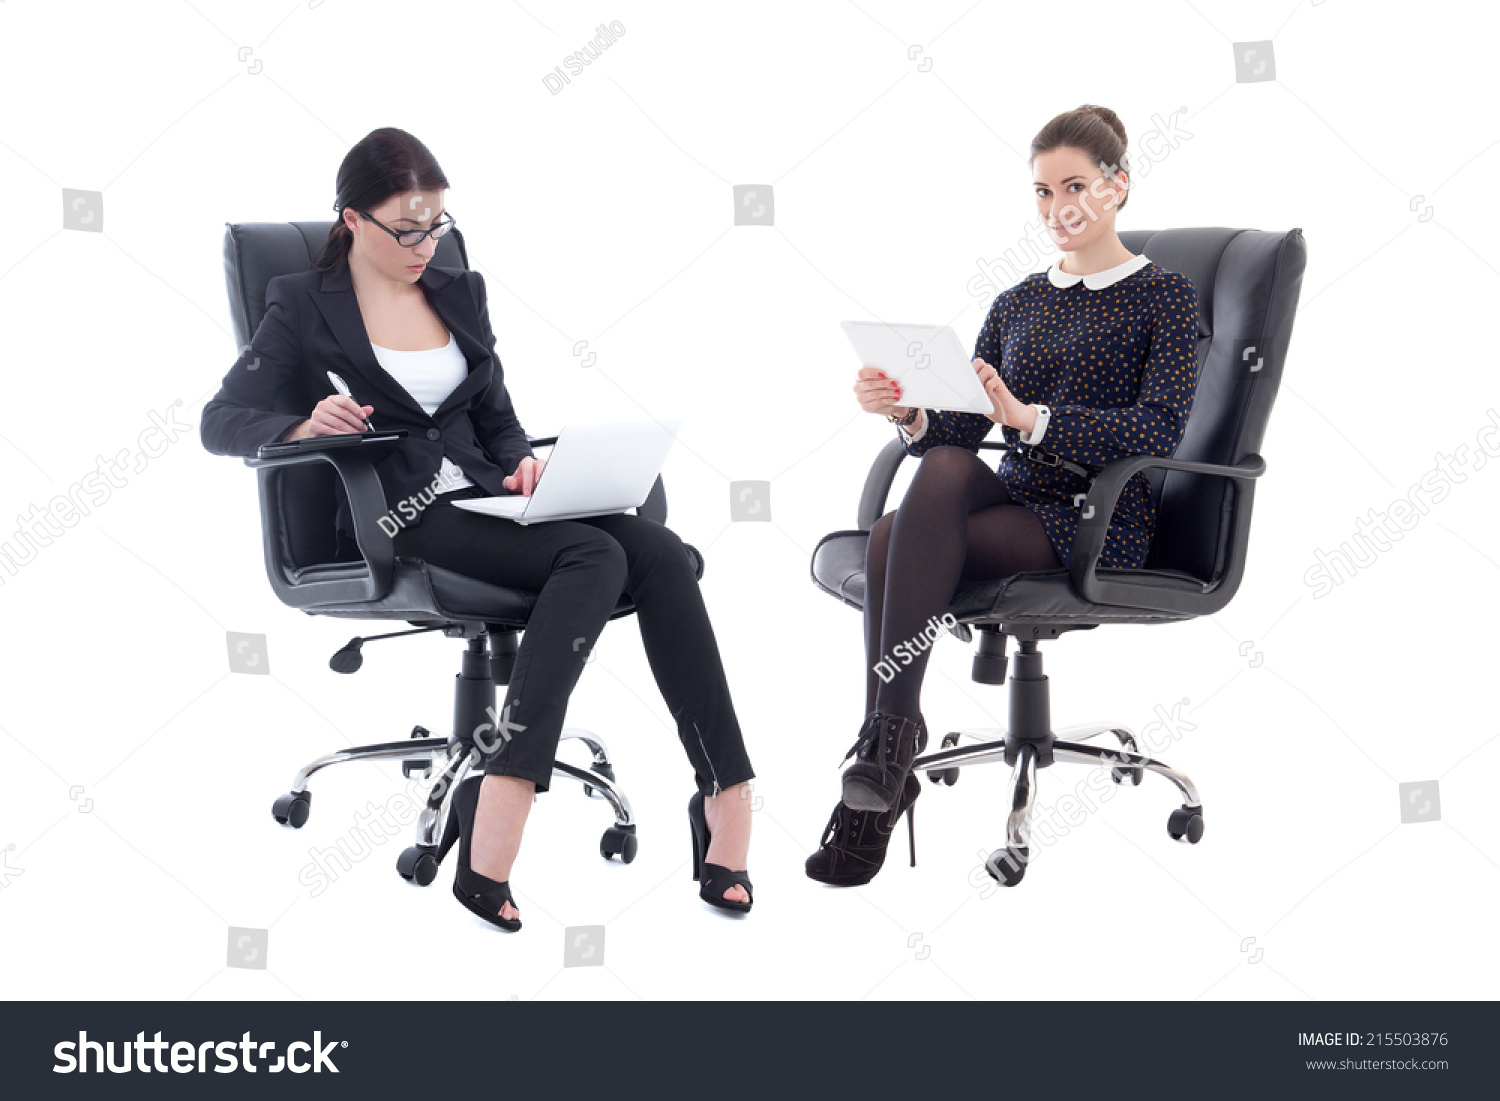 office furniture for women. Two Beautiful Business Women Sitting On Office Chairs With Tablet Pc And Laptop Isolated White Furniture For